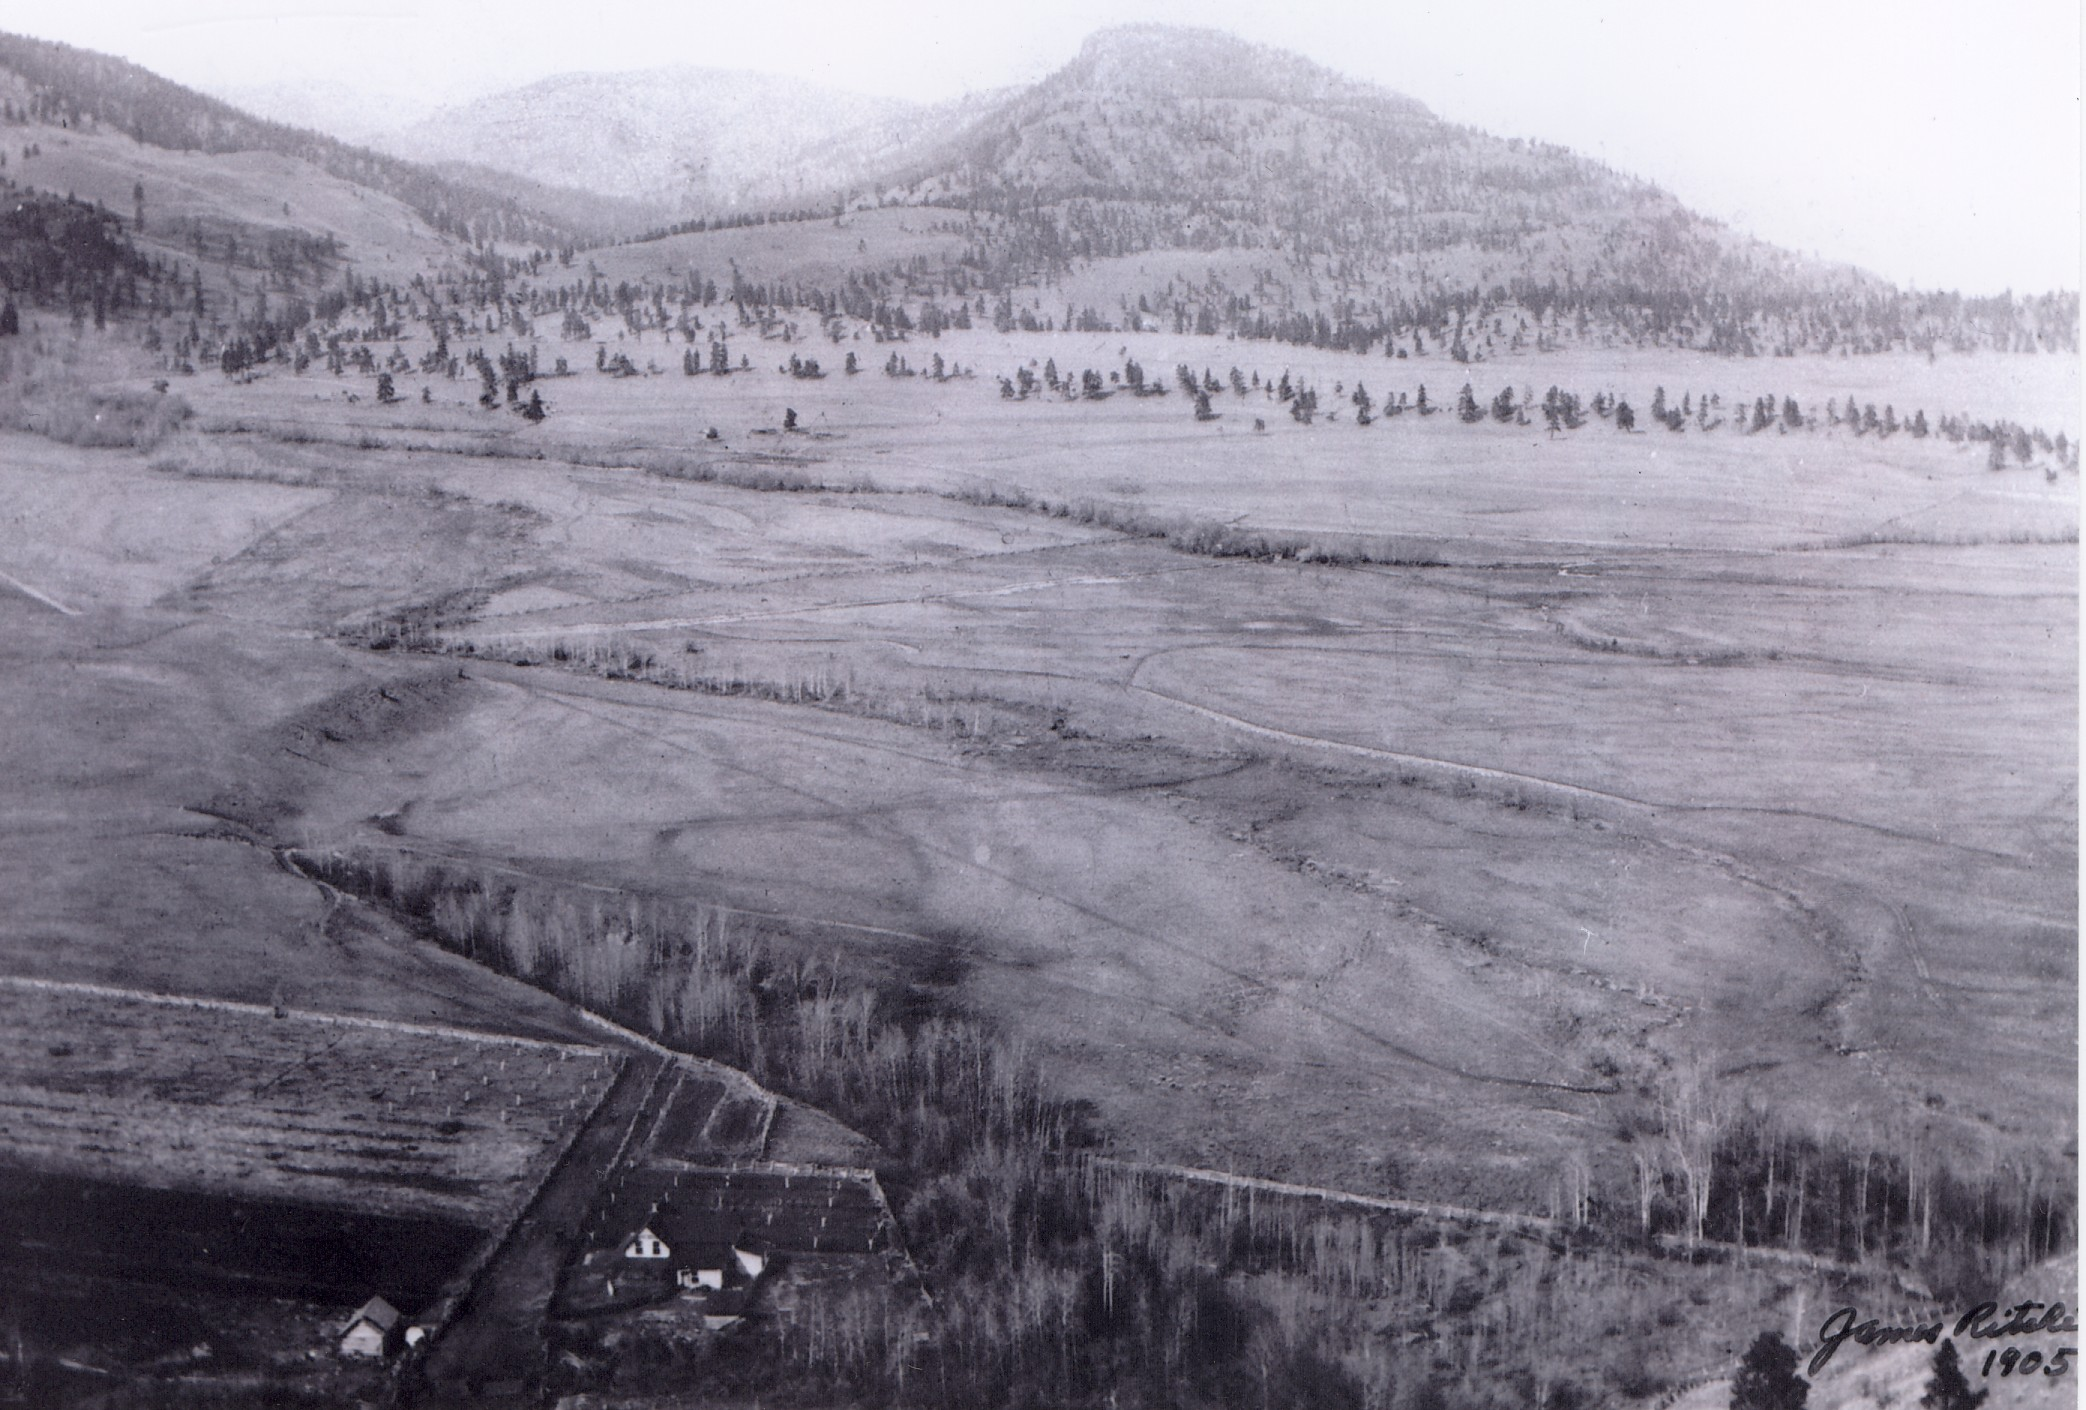 The flats of future downtown Summerland with James Ritchie's home in left, previously Indian Reserve #3, 1905